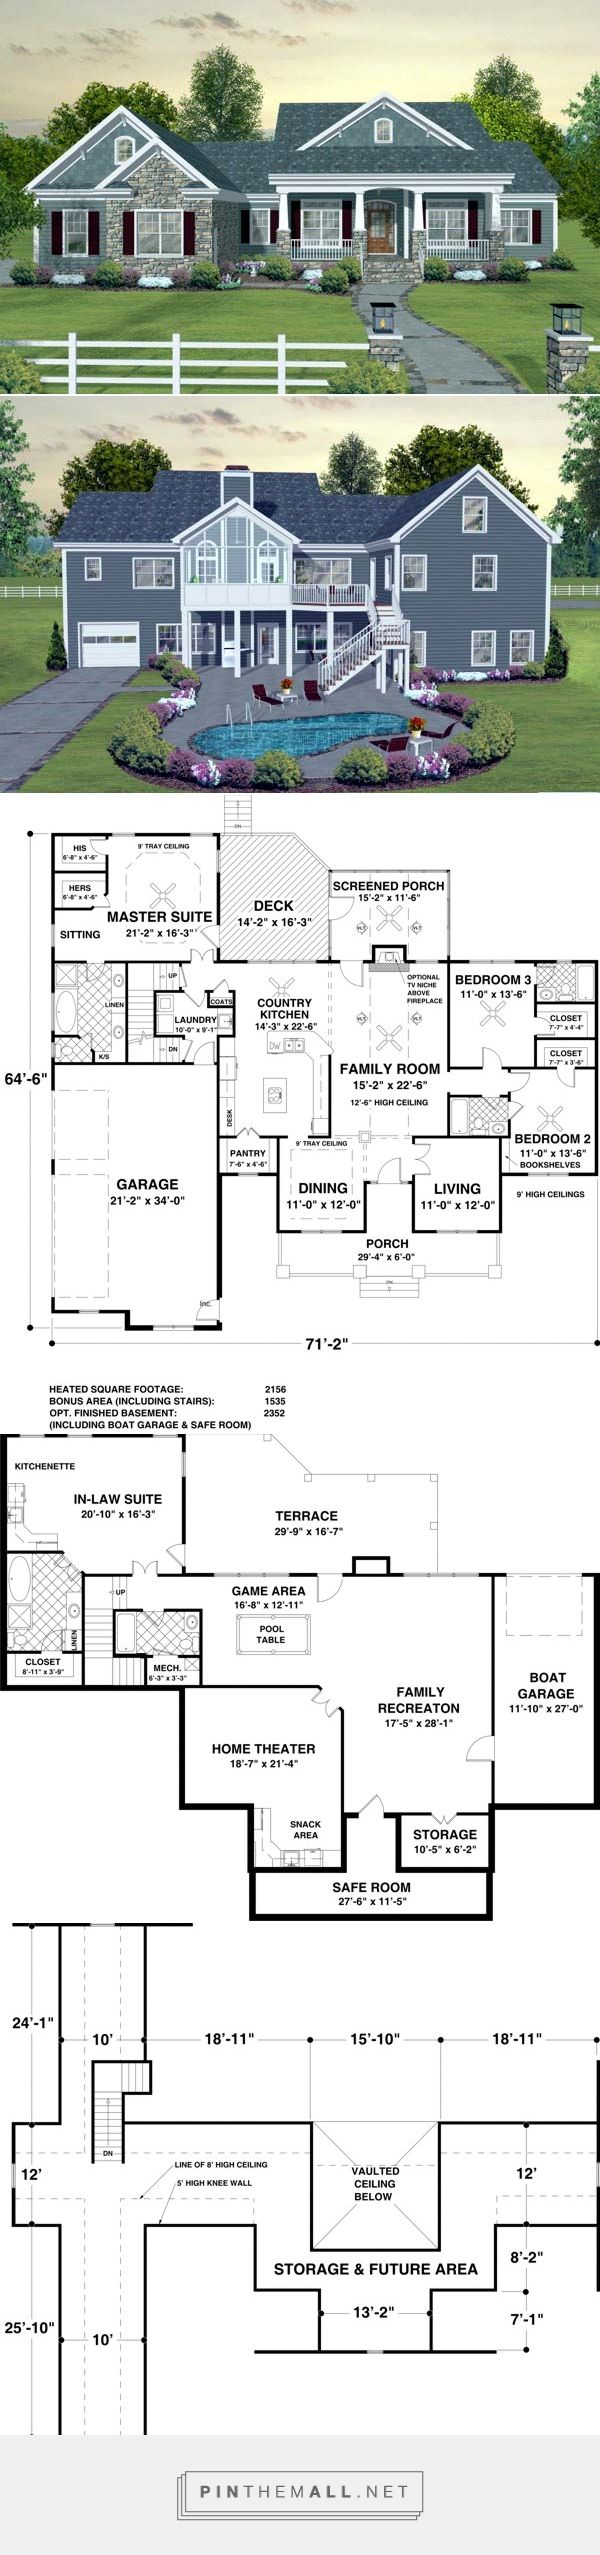 House Plan Chp 45369 At COOLhouseplans.com